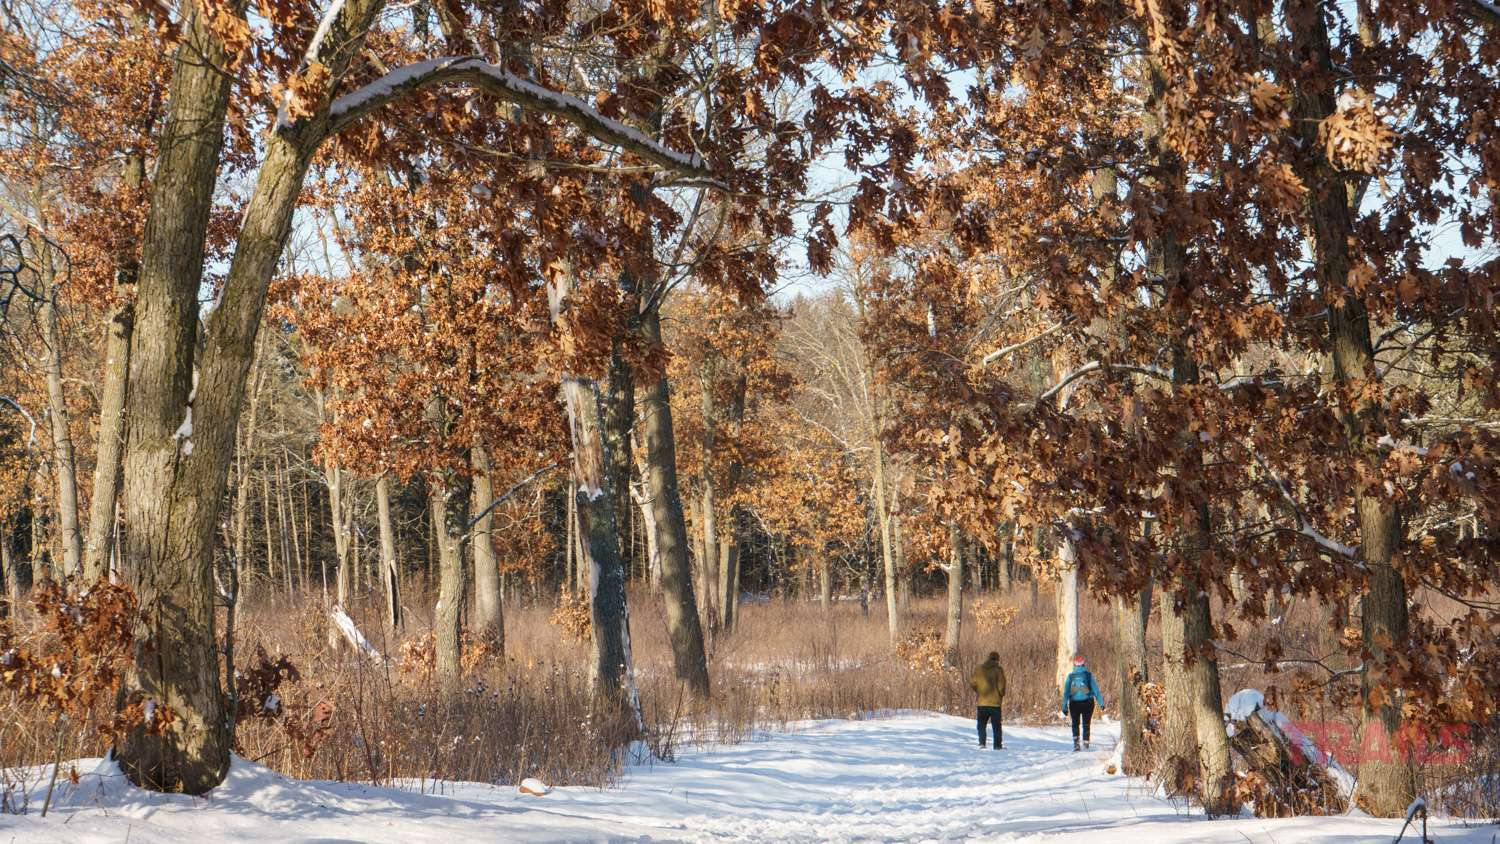 A man and a woman walk through a snow covered field dotted with oak trees in the winter